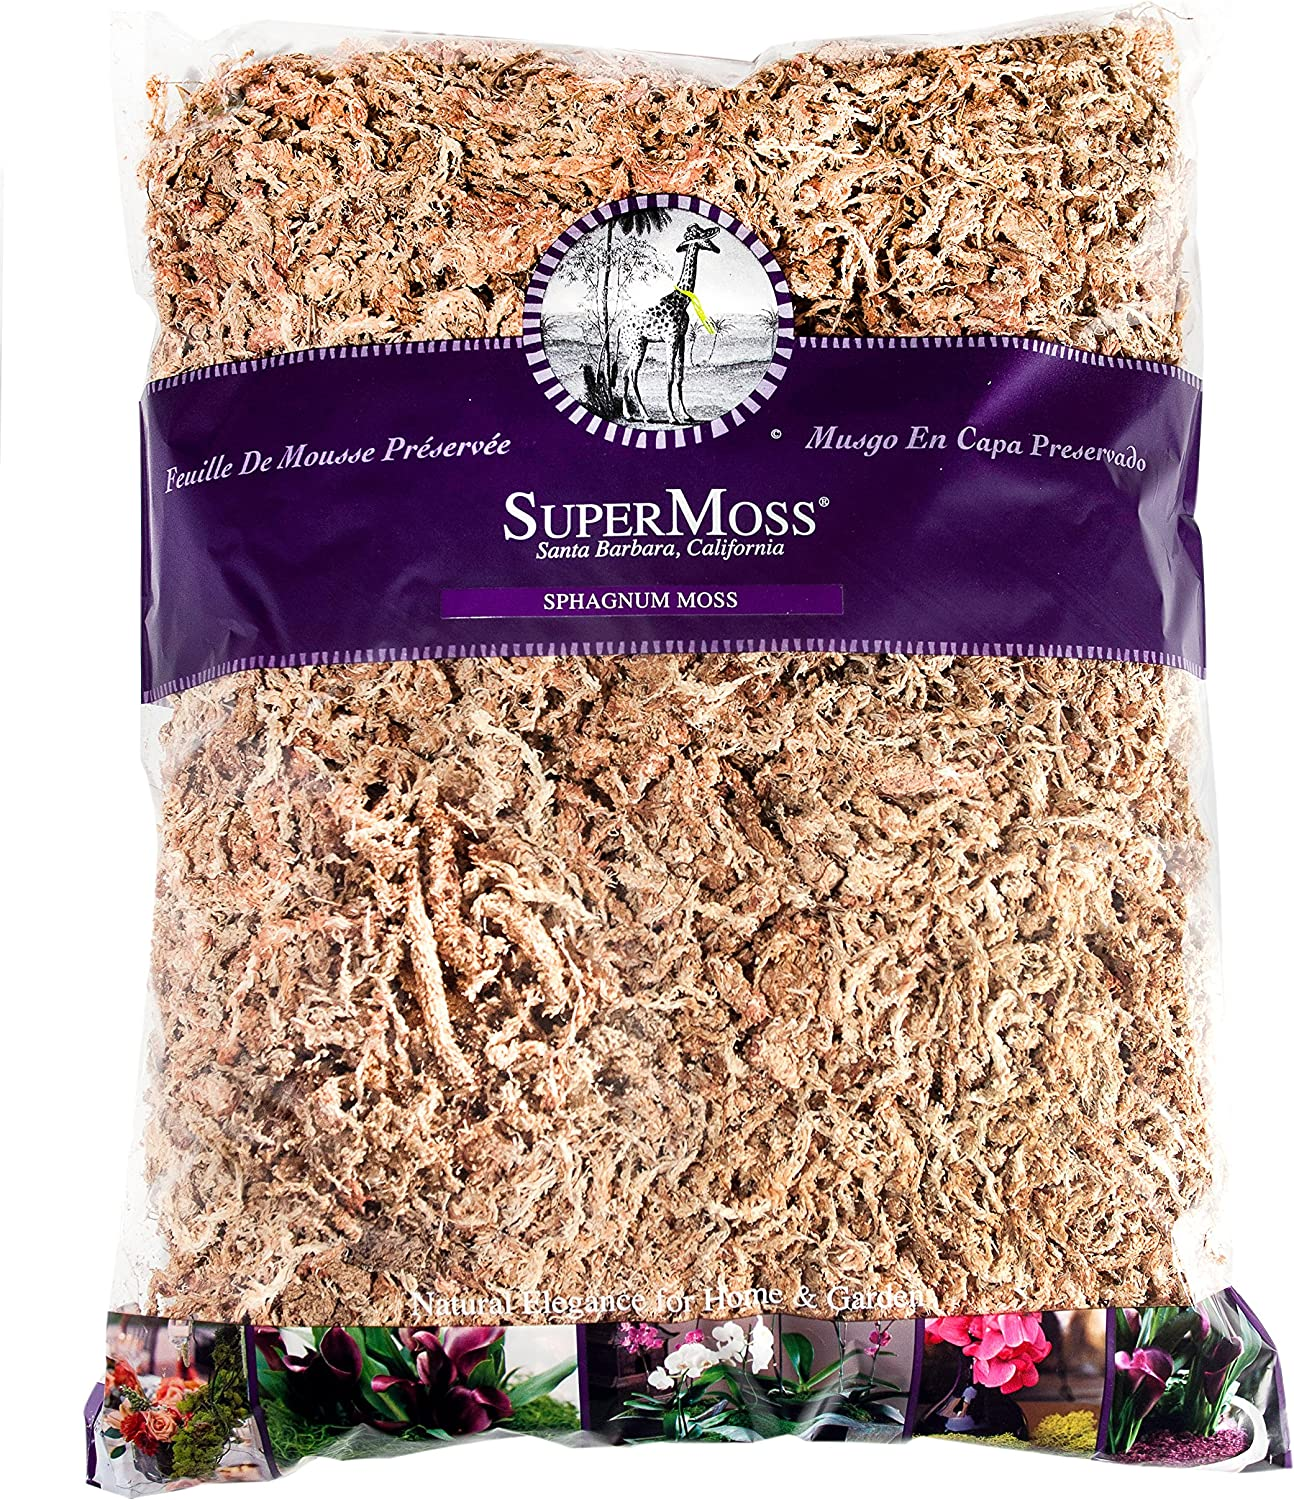 SuperMoss Orchid Sphagnum Moss For Orchids Venus Fly Traps Hanging Baskets 1lb